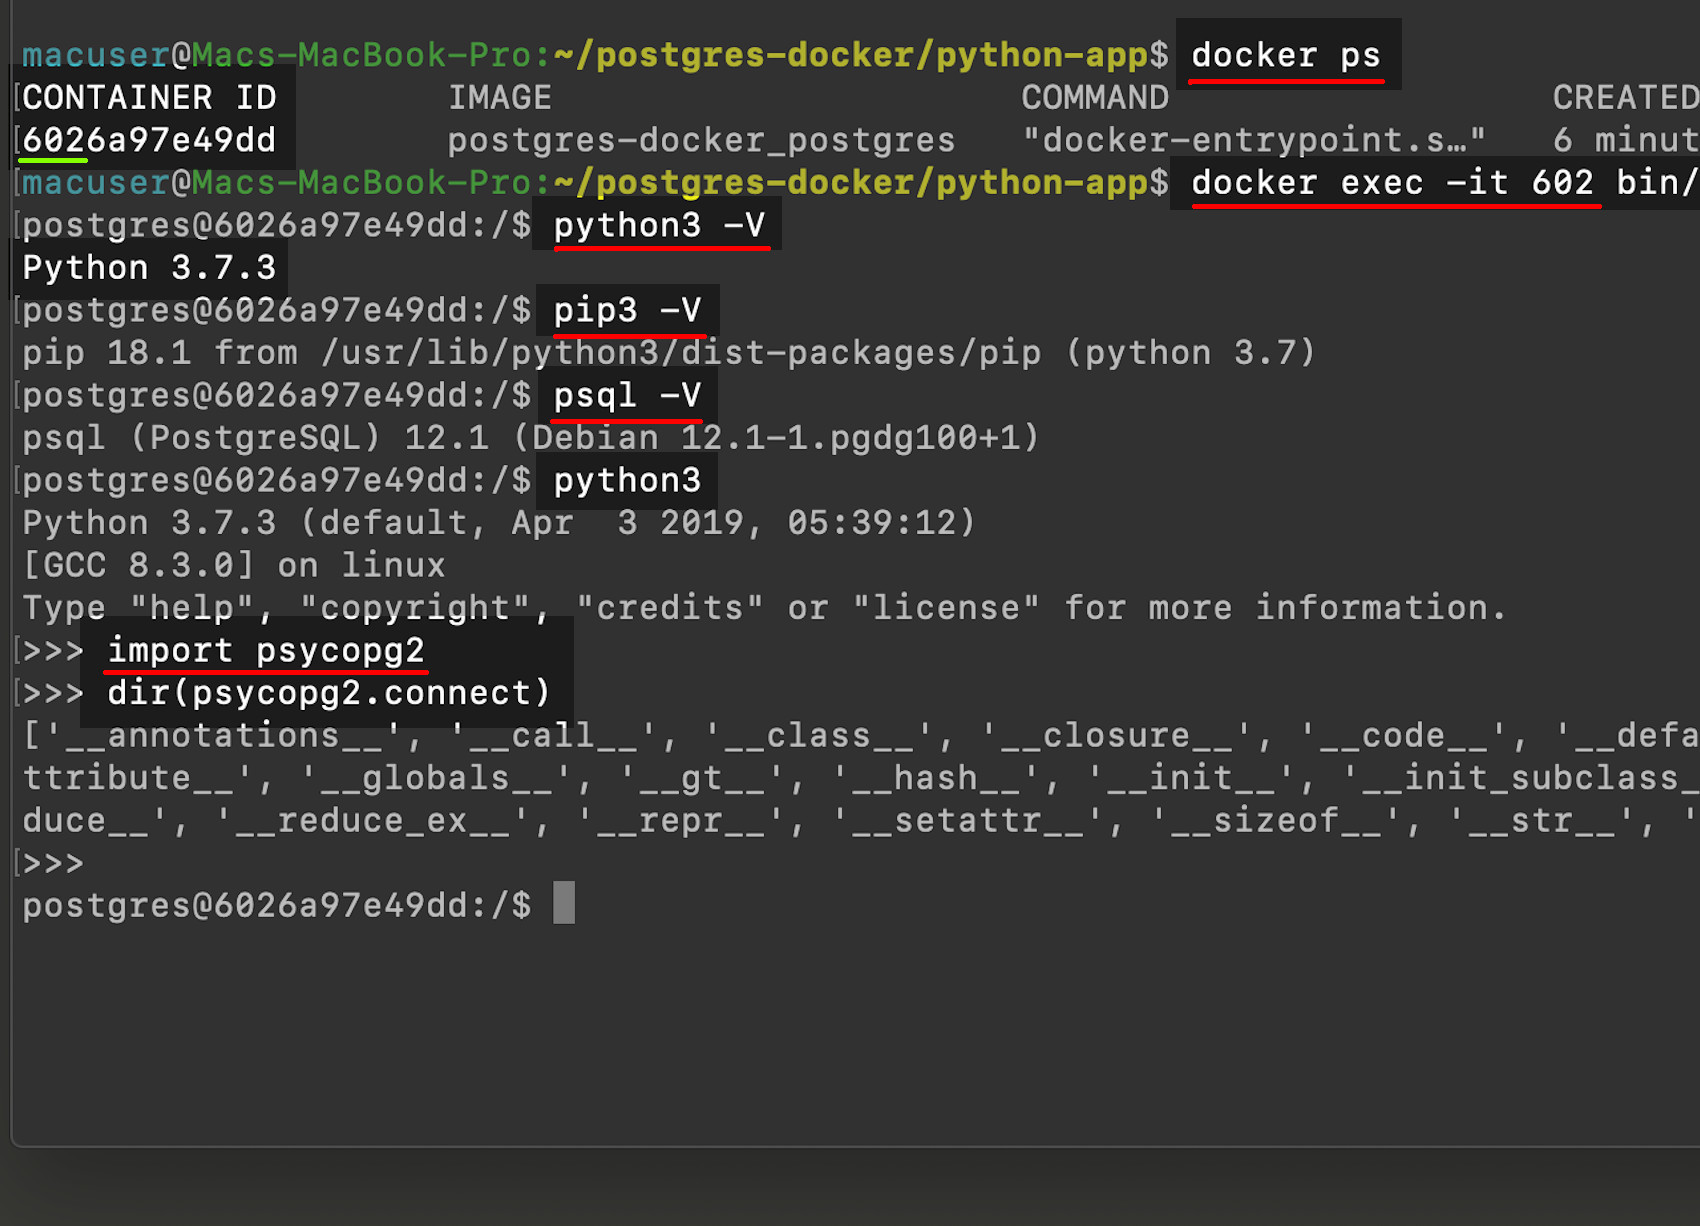 Using docker exec to interact with PostgreSQL container and test Python